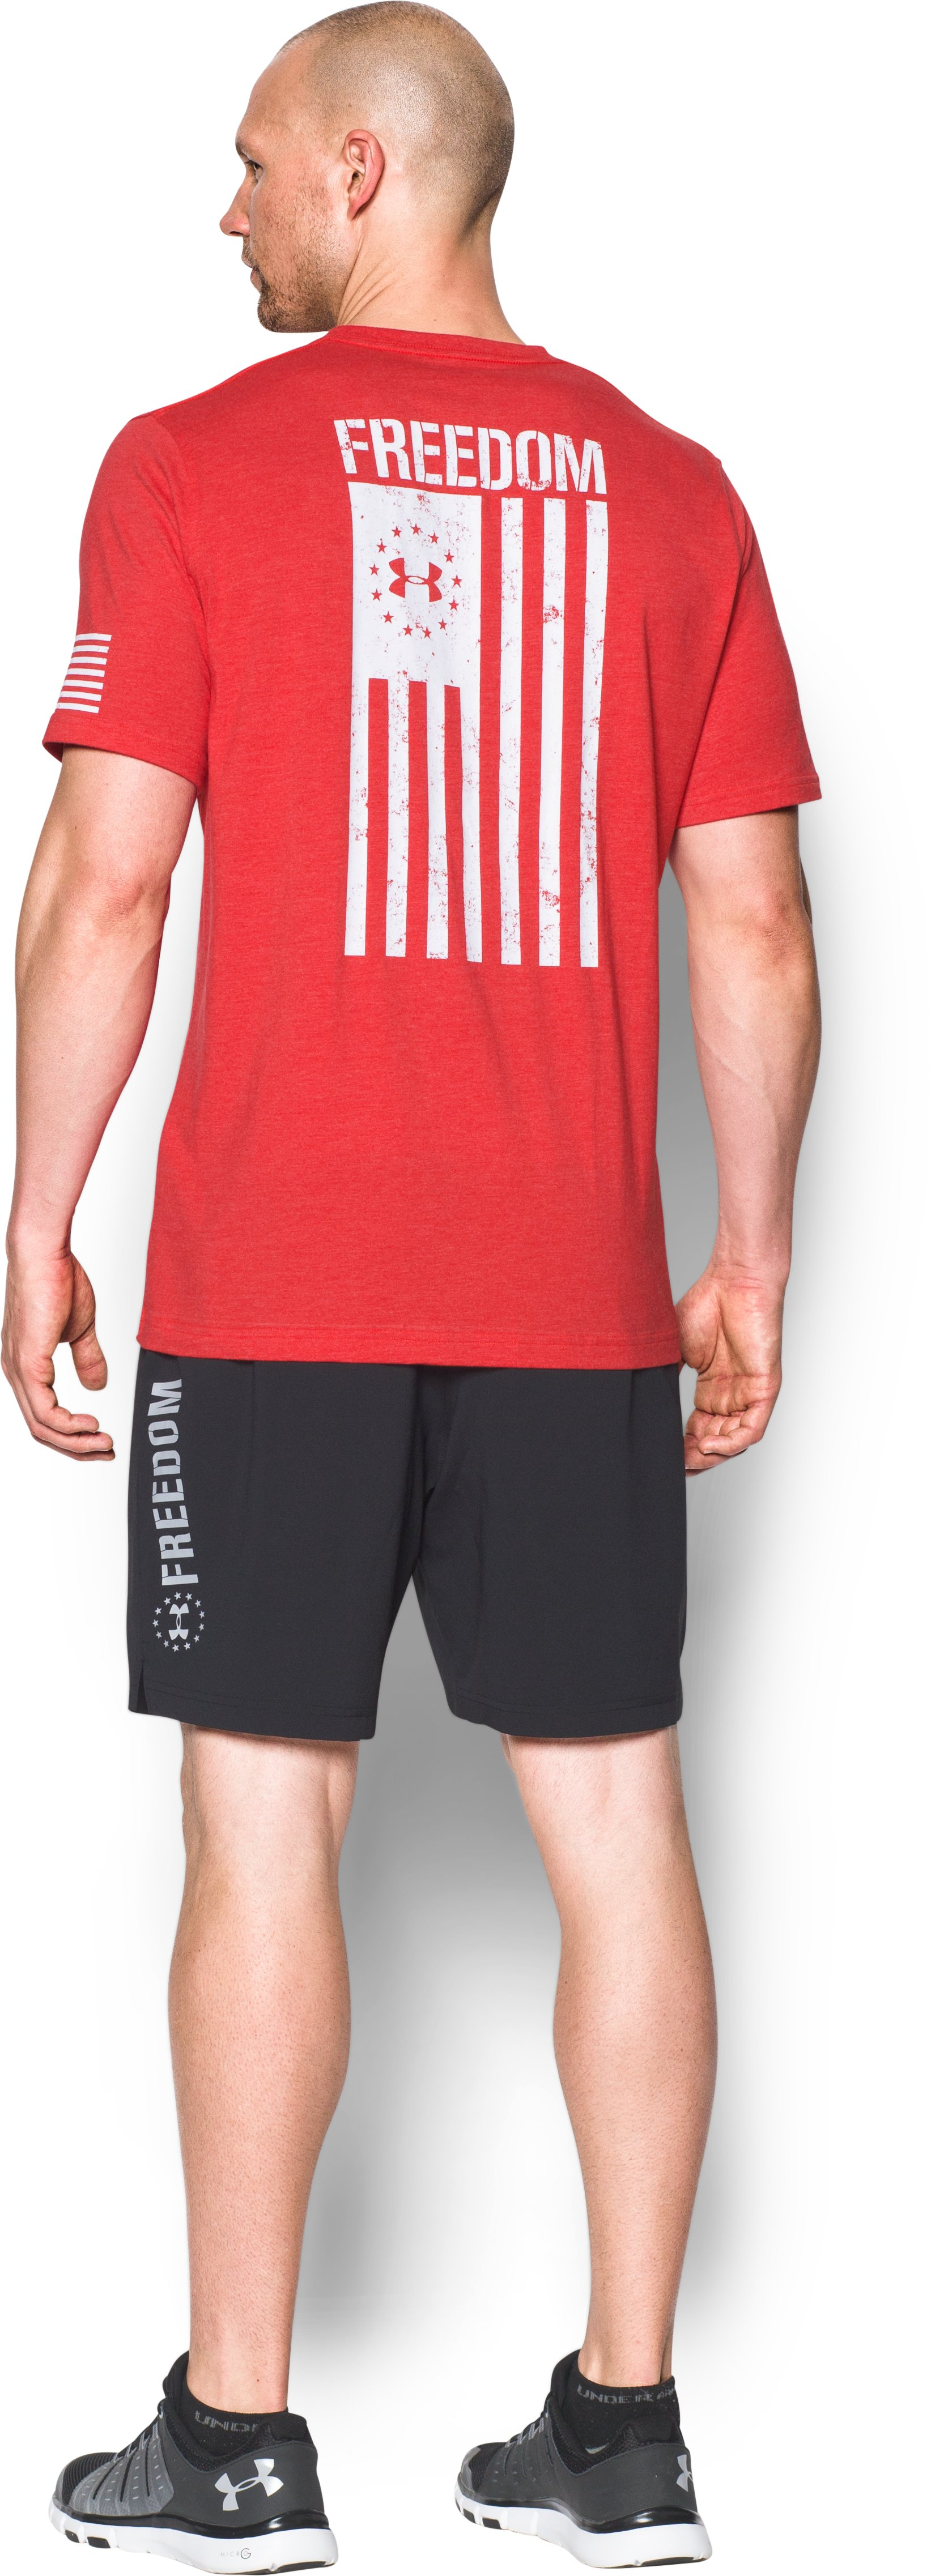 red color t-shirt Men's UA Freedom Flag T-Shirt Soft and <strong>comfortable</strong>